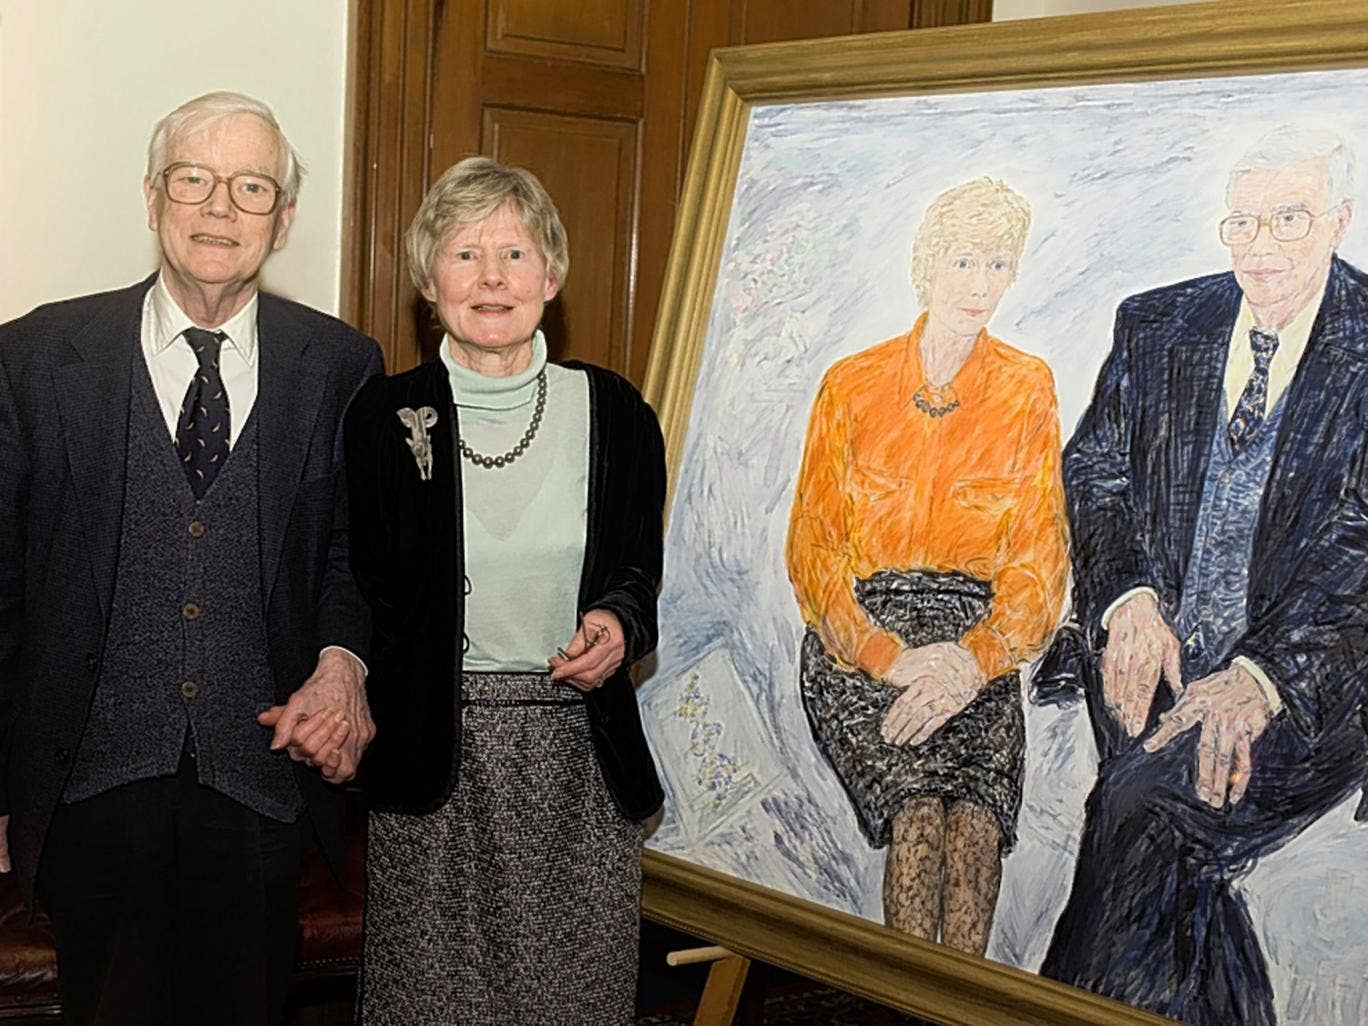 Murray and his wife Noreen, with their double portrait; they made a formidable team